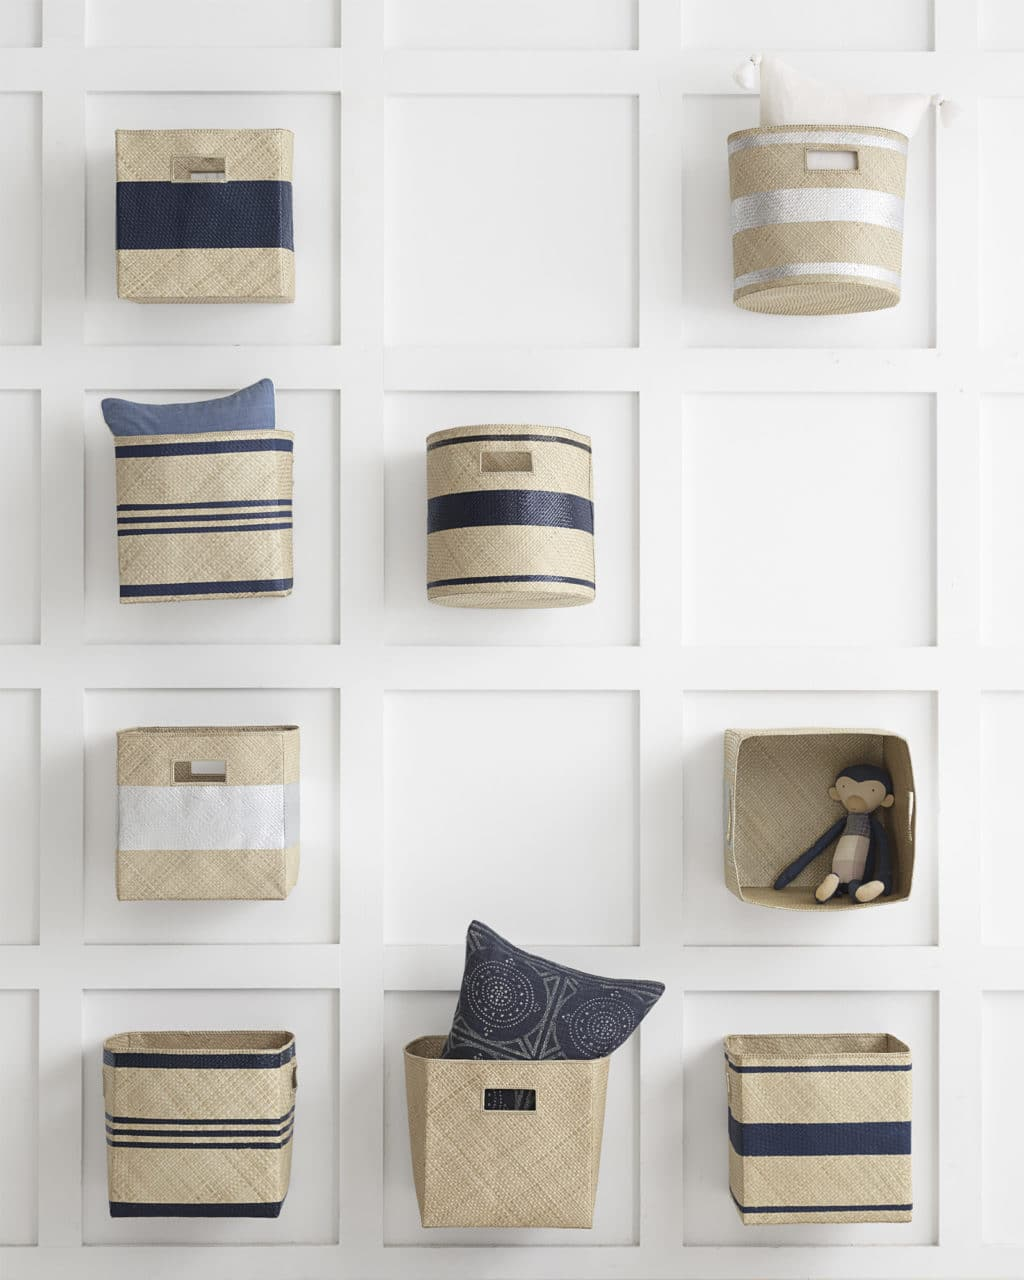 feature wall created with hanging coastal inspired bins from Serena & Lily